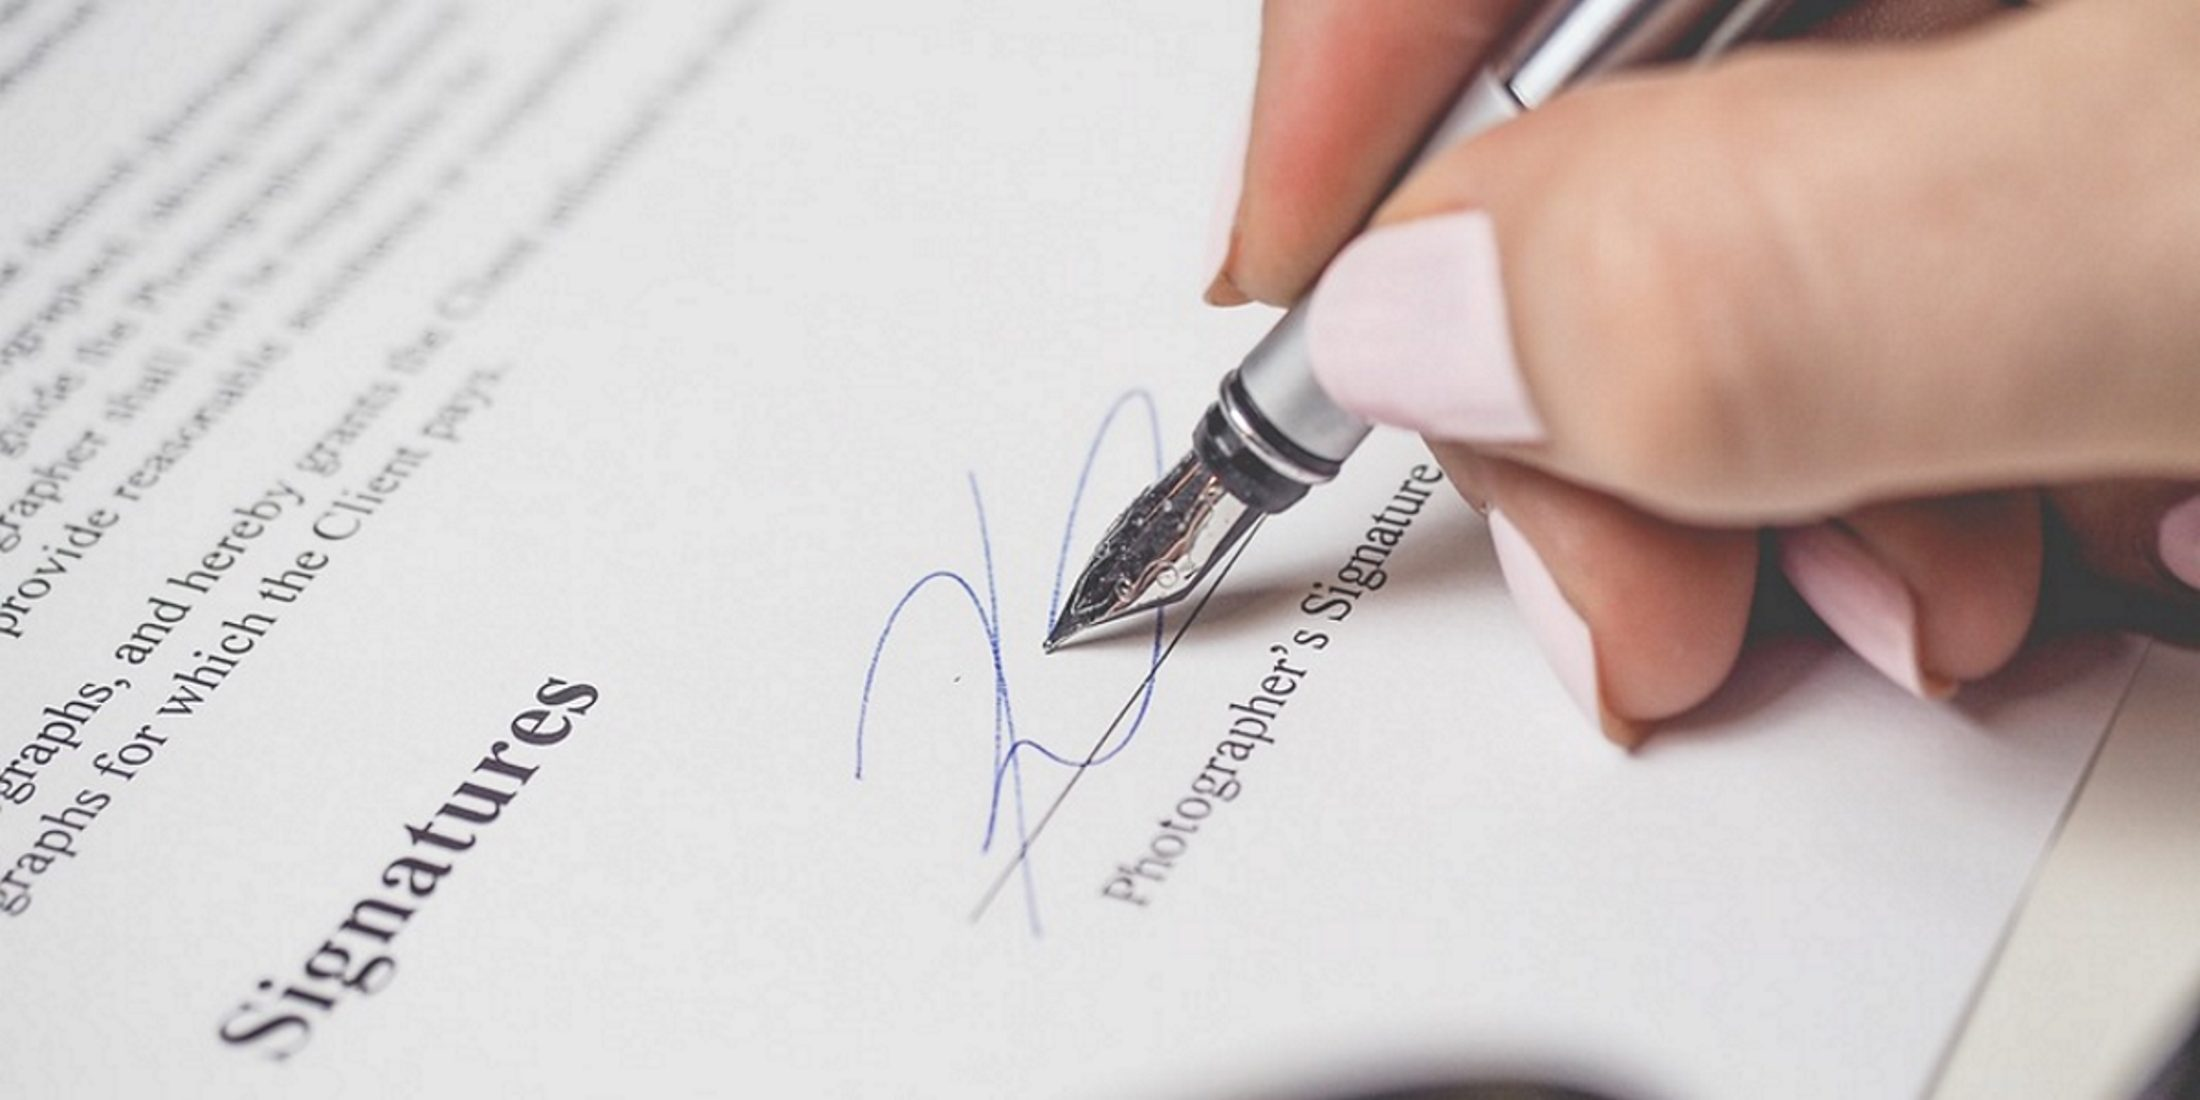 Contract-signing-image-woman-pen